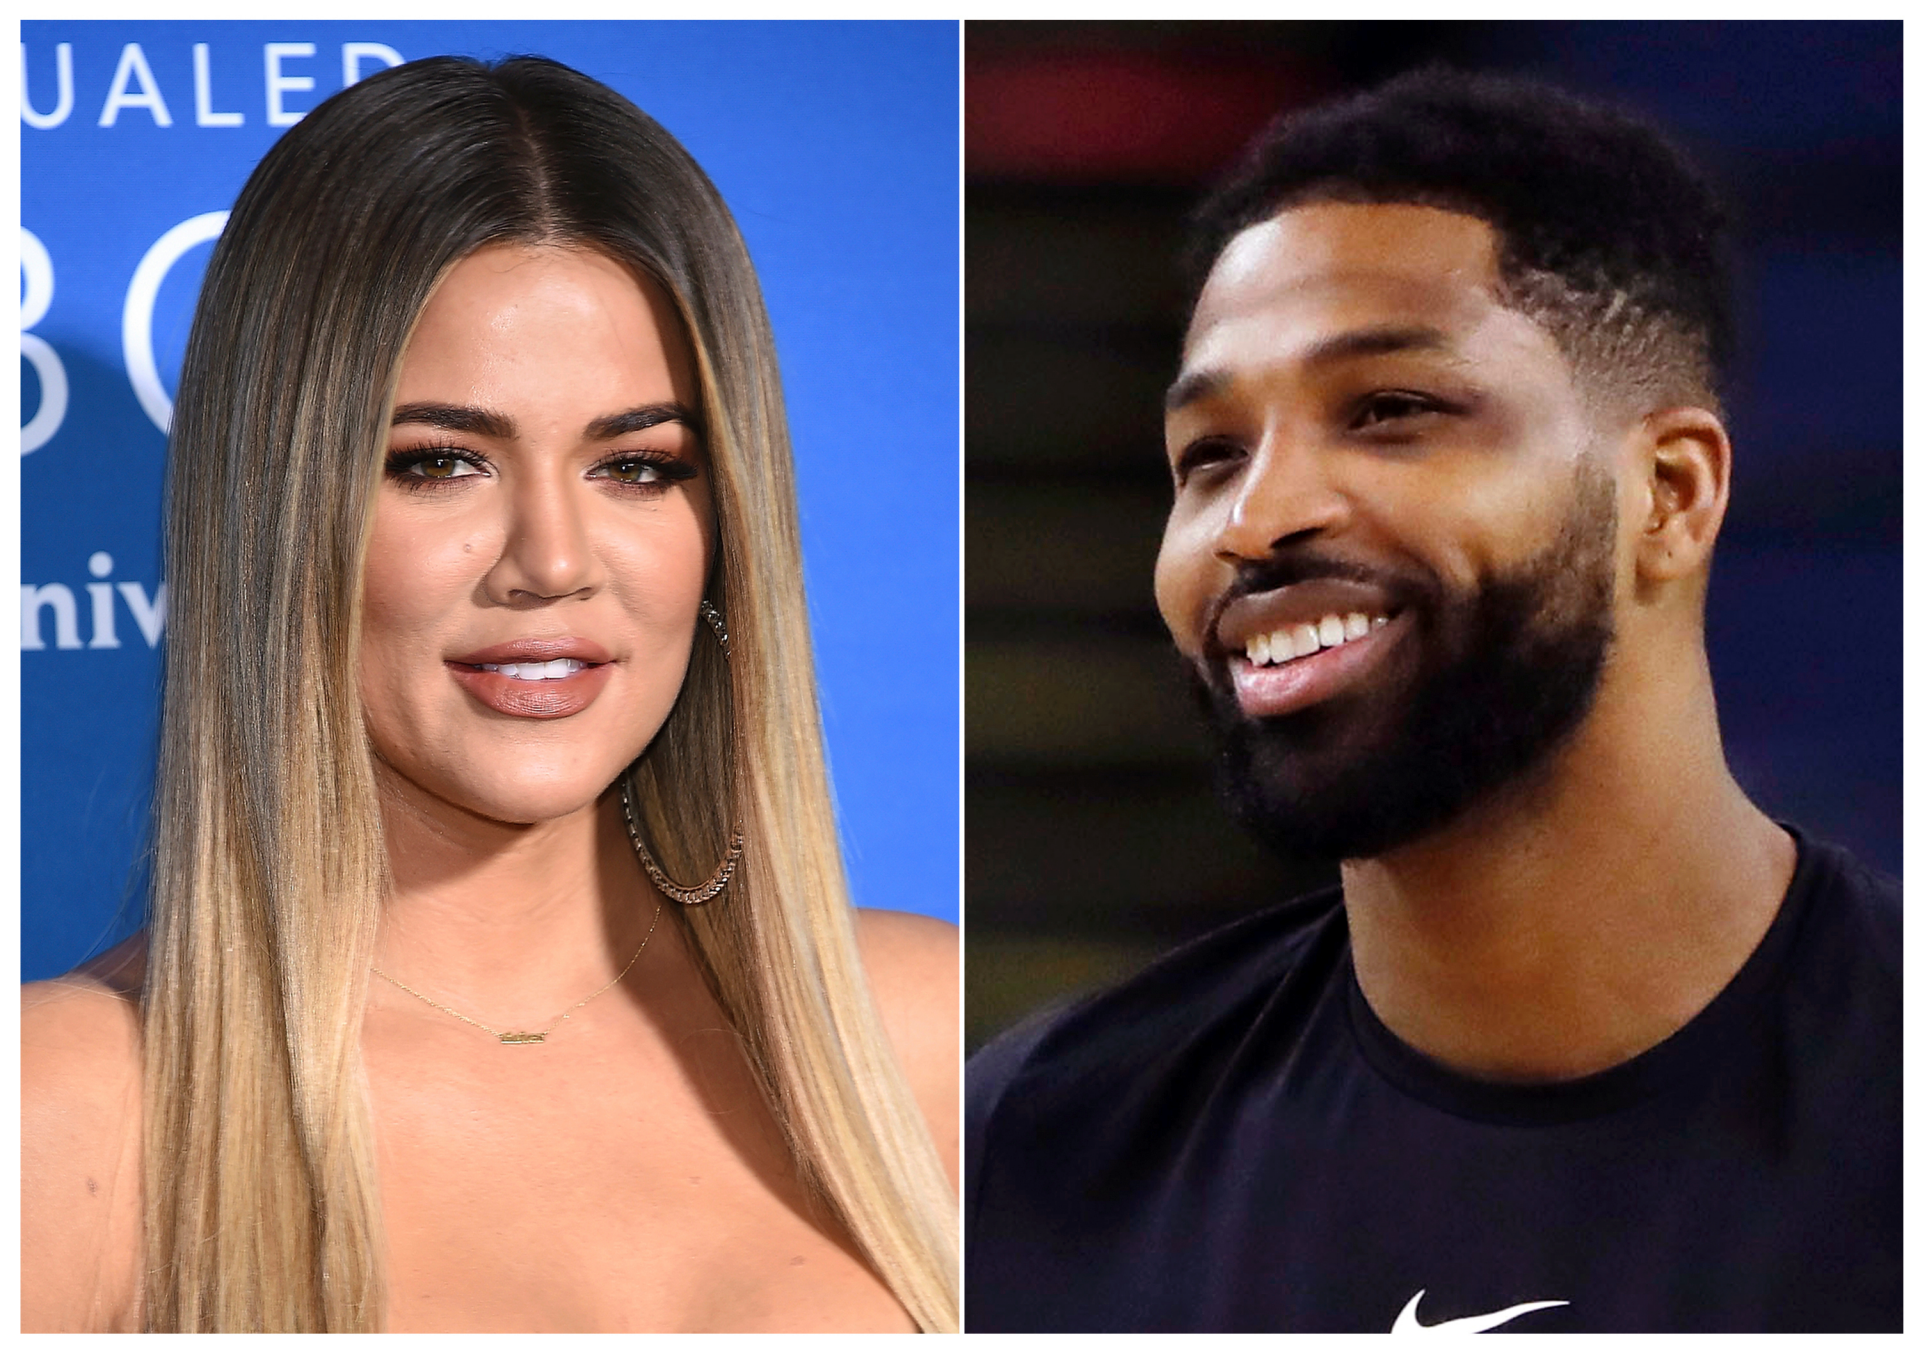 Khloe Kardashian's ex Tristan Thompson leaves 'thirsty' comment under Instagram post